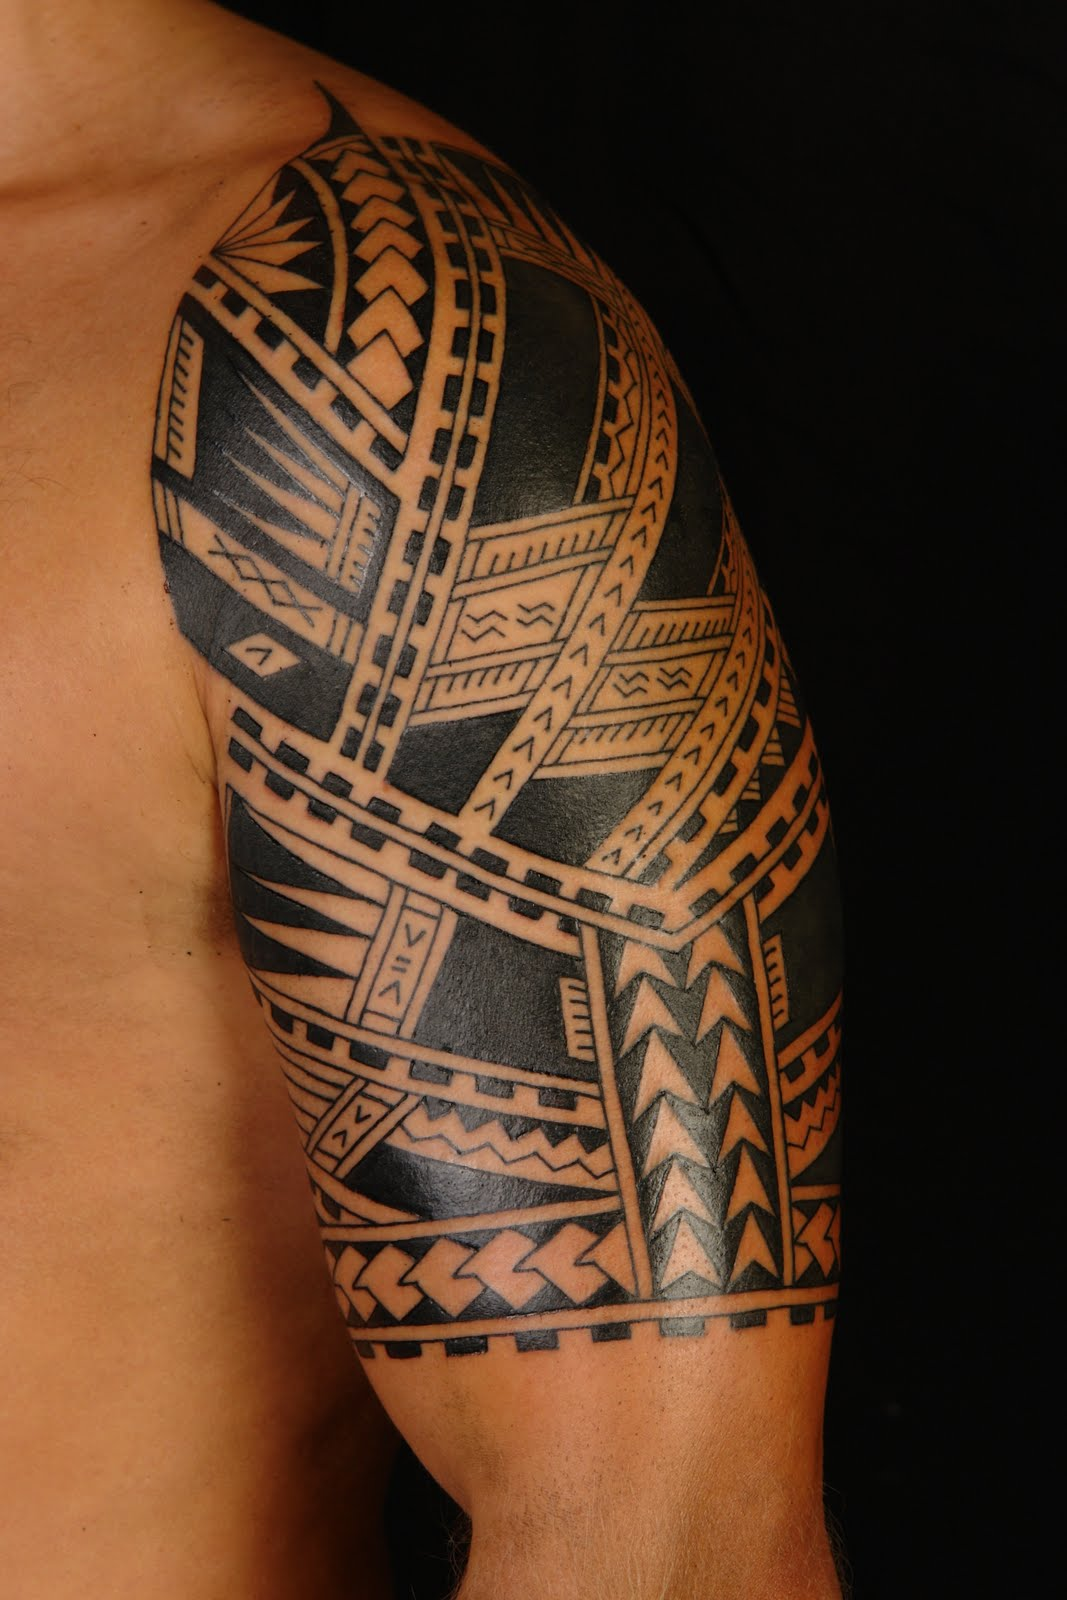 Hunger games wallpaper polynesian tattoo the etua designs have a firm spiritual meaning these tattoo symbols were given to the person as an honor or as an offering to protect the individuals biocorpaavc Gallery